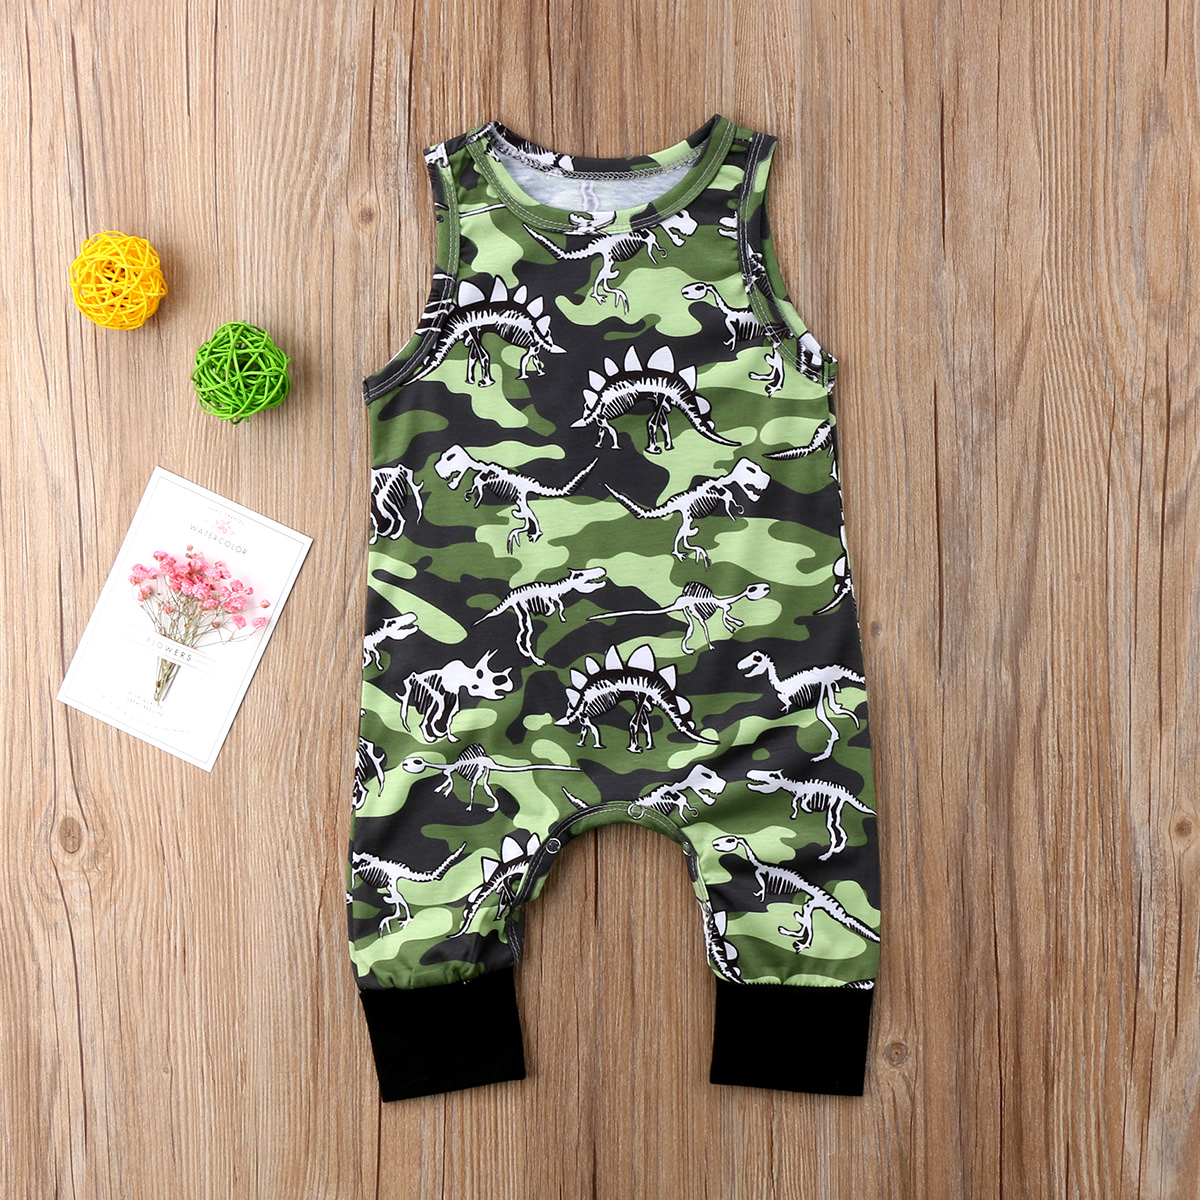 Frank 2018 Toddler Newborn Infant Baby Girls Boys Dinosaur Outfit Clothes Romper Jumpsuit Summer Sleeveless Green Romper Yu A Great Variety Of Models Boys' Baby Clothing Mother & Kids